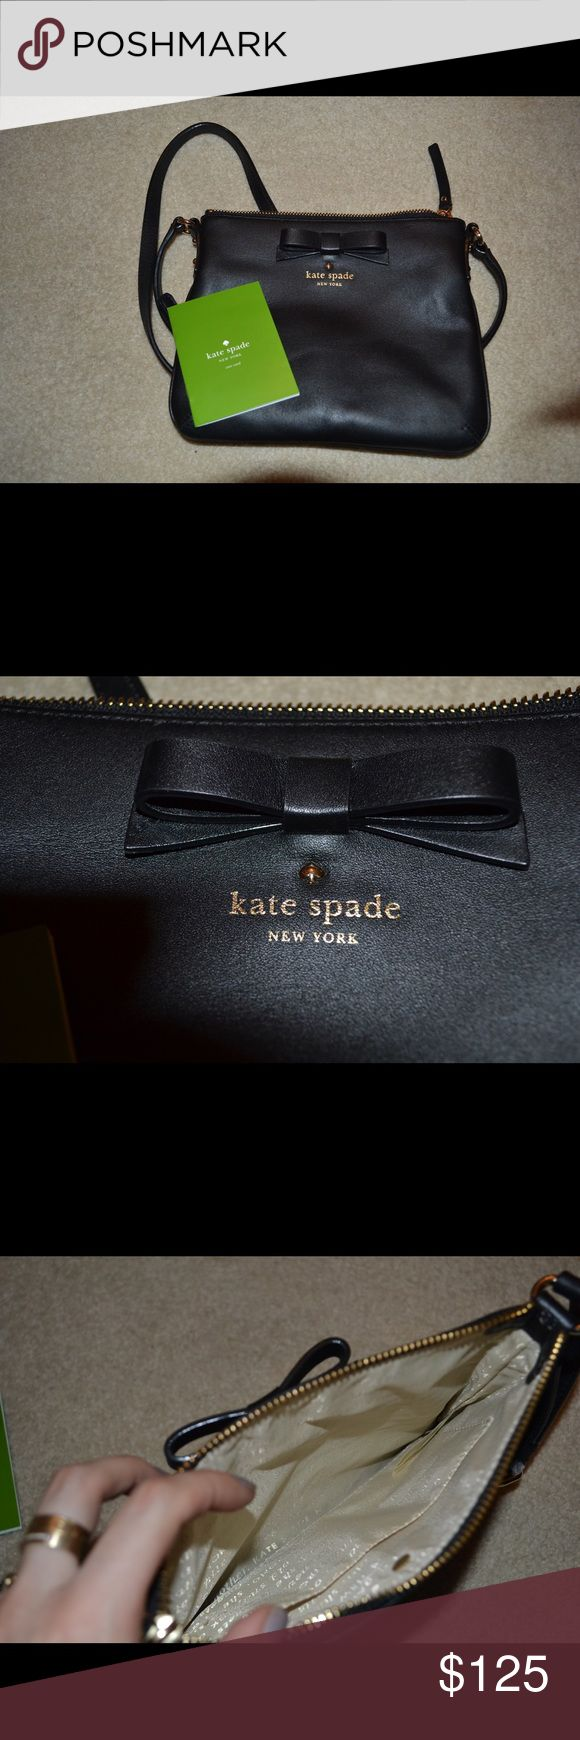 UNWORN Kate Spade crossbody black bag with bow Black leather with gold accents cross body! Unworn. Received as a present but never wore. Comes with care card and everything :) kate spade Bags Crossbody Bags